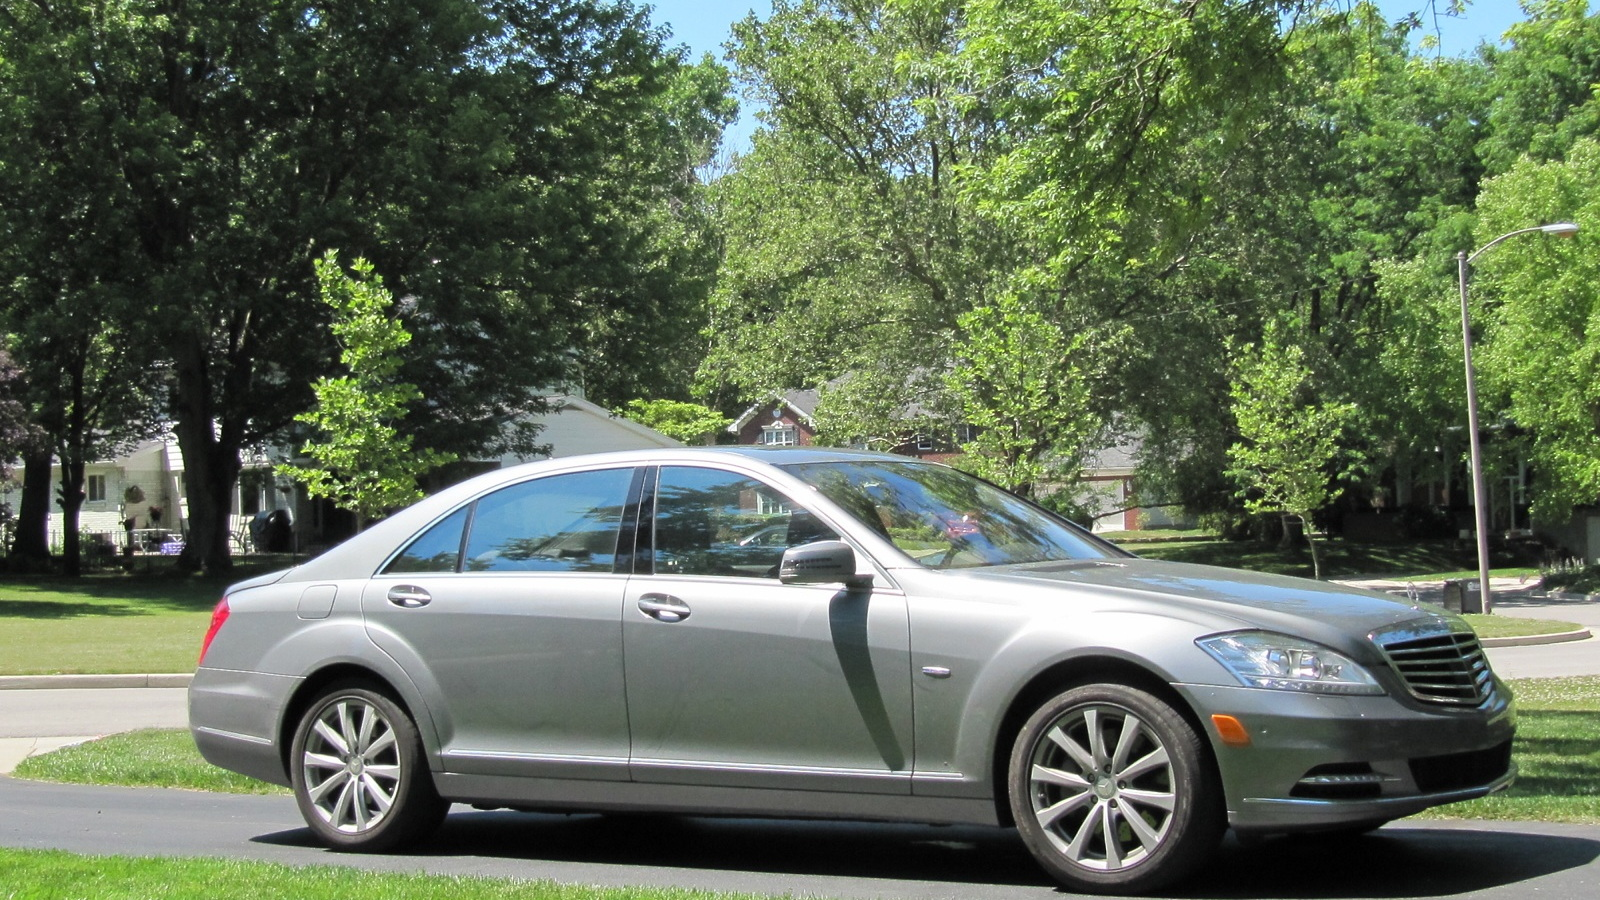 2012 Mercedes-Benz S 350 BlueTEC: One Week In 32-MPG Diesel Luxury Sedan